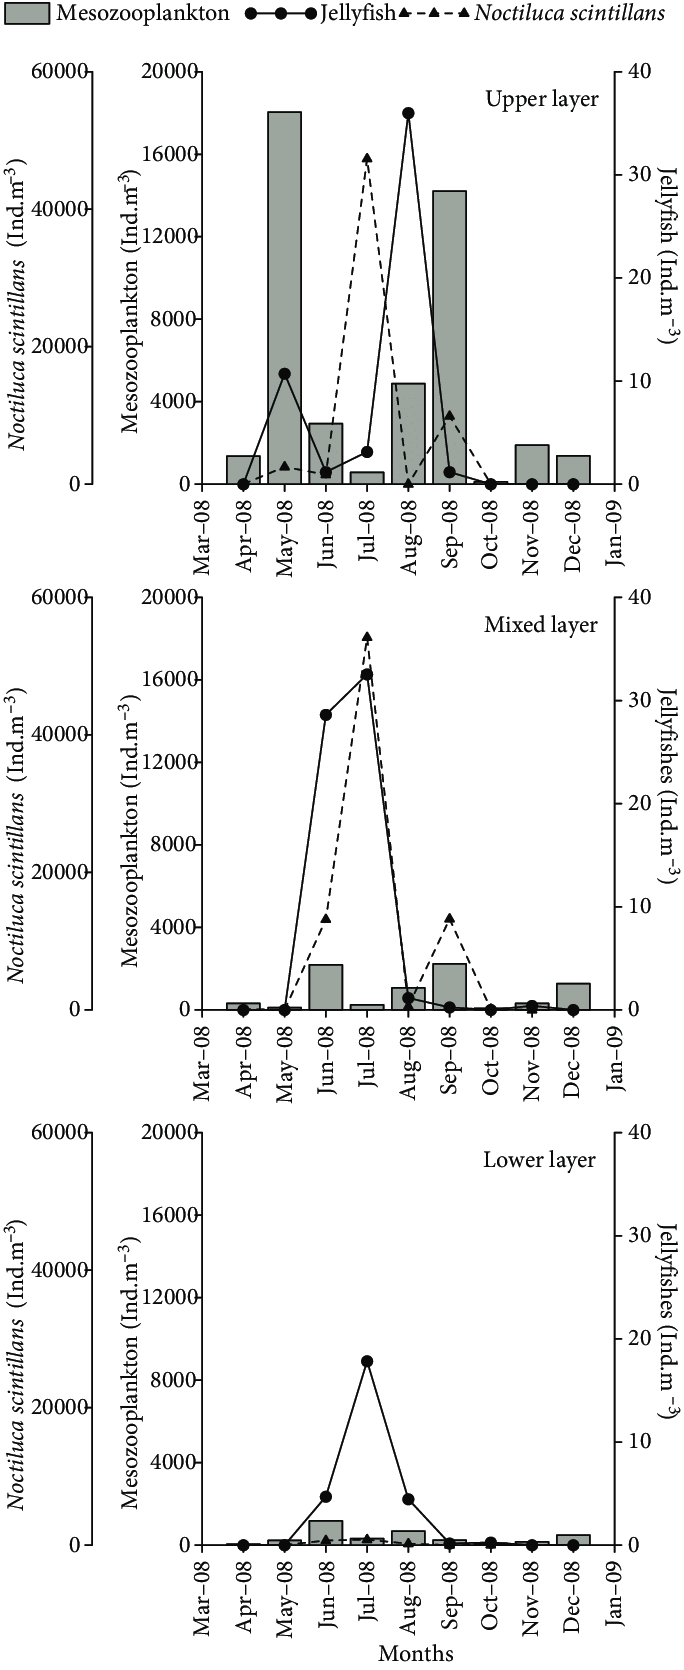 hight resolution of fluctuations in total abundance of mesozooplankton noctiluca scintillans and jellyfish in the upper mixed